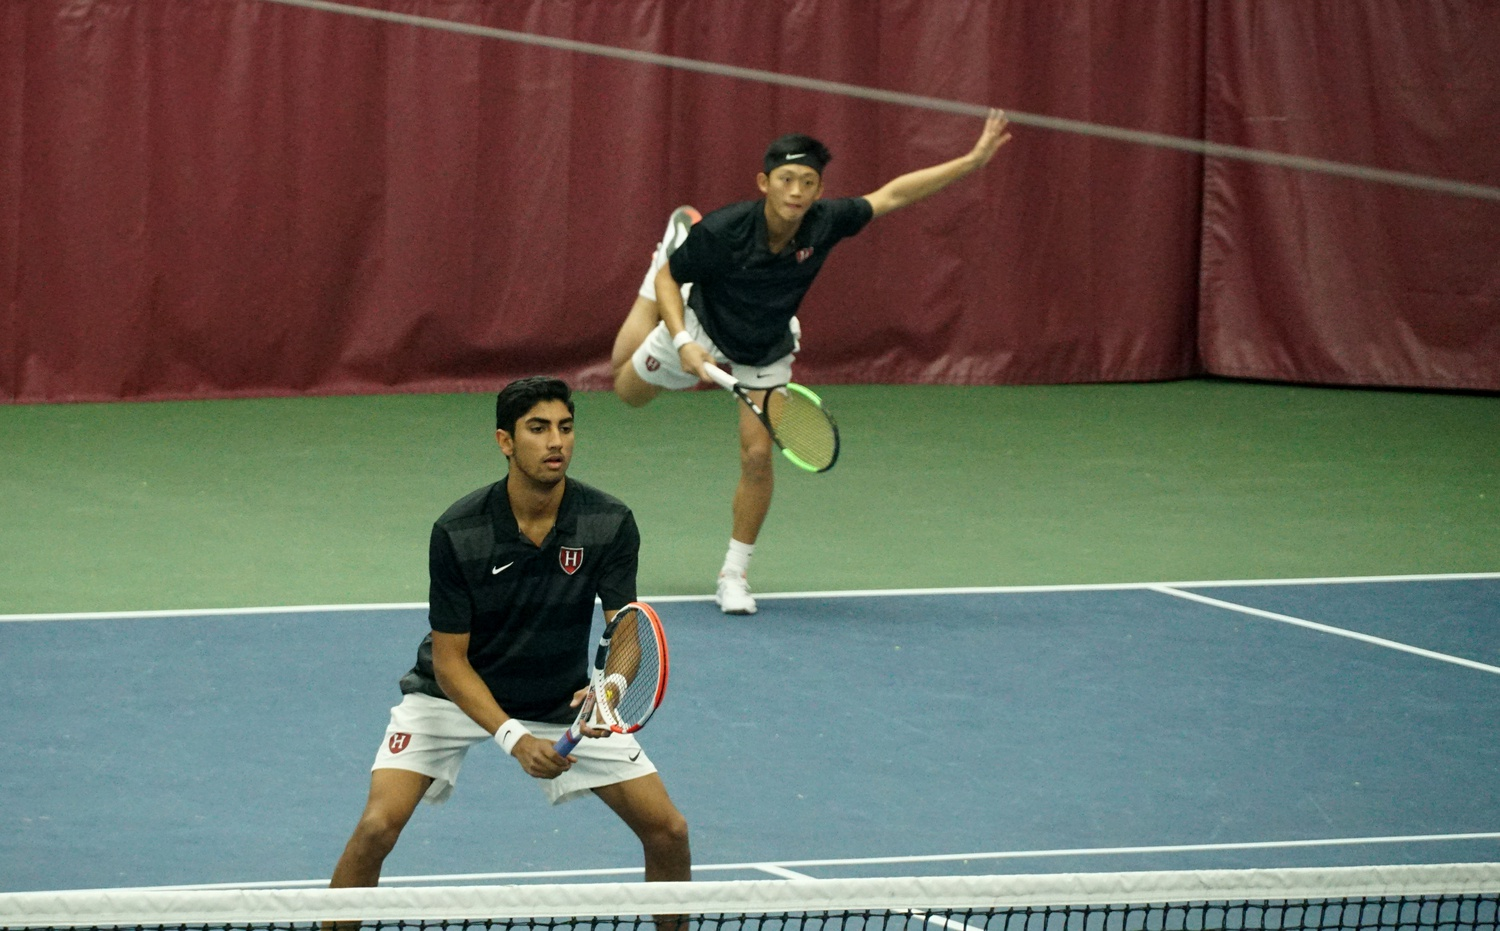 First-year Ronan Jachuk (front) awaits the opponent's return as sophomore Brian Shi (back) delivers a serve in the Harvard victory over Rice. Combined with the women's team, Crimson tennis would go a perfect 3-0 on the weekend.